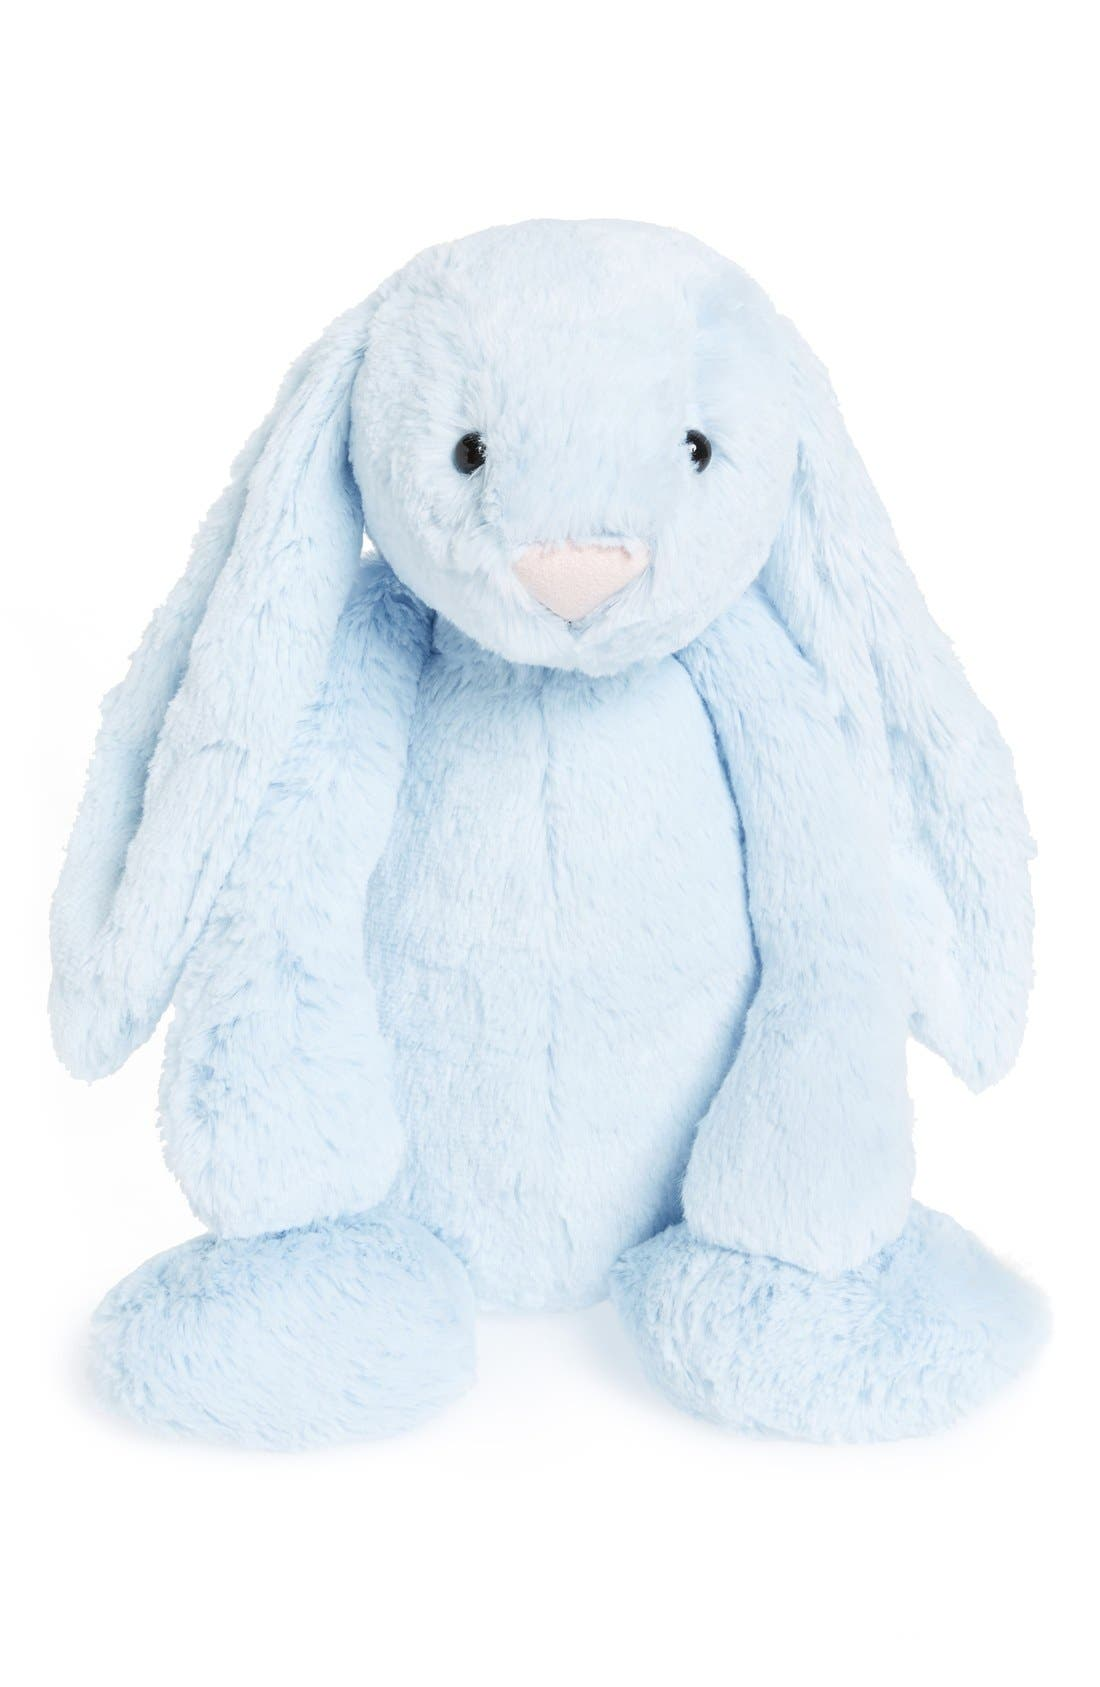 Alternate Image 1 Selected - Jellycat 'Bashful Blue Bunny' Stuffed Animal